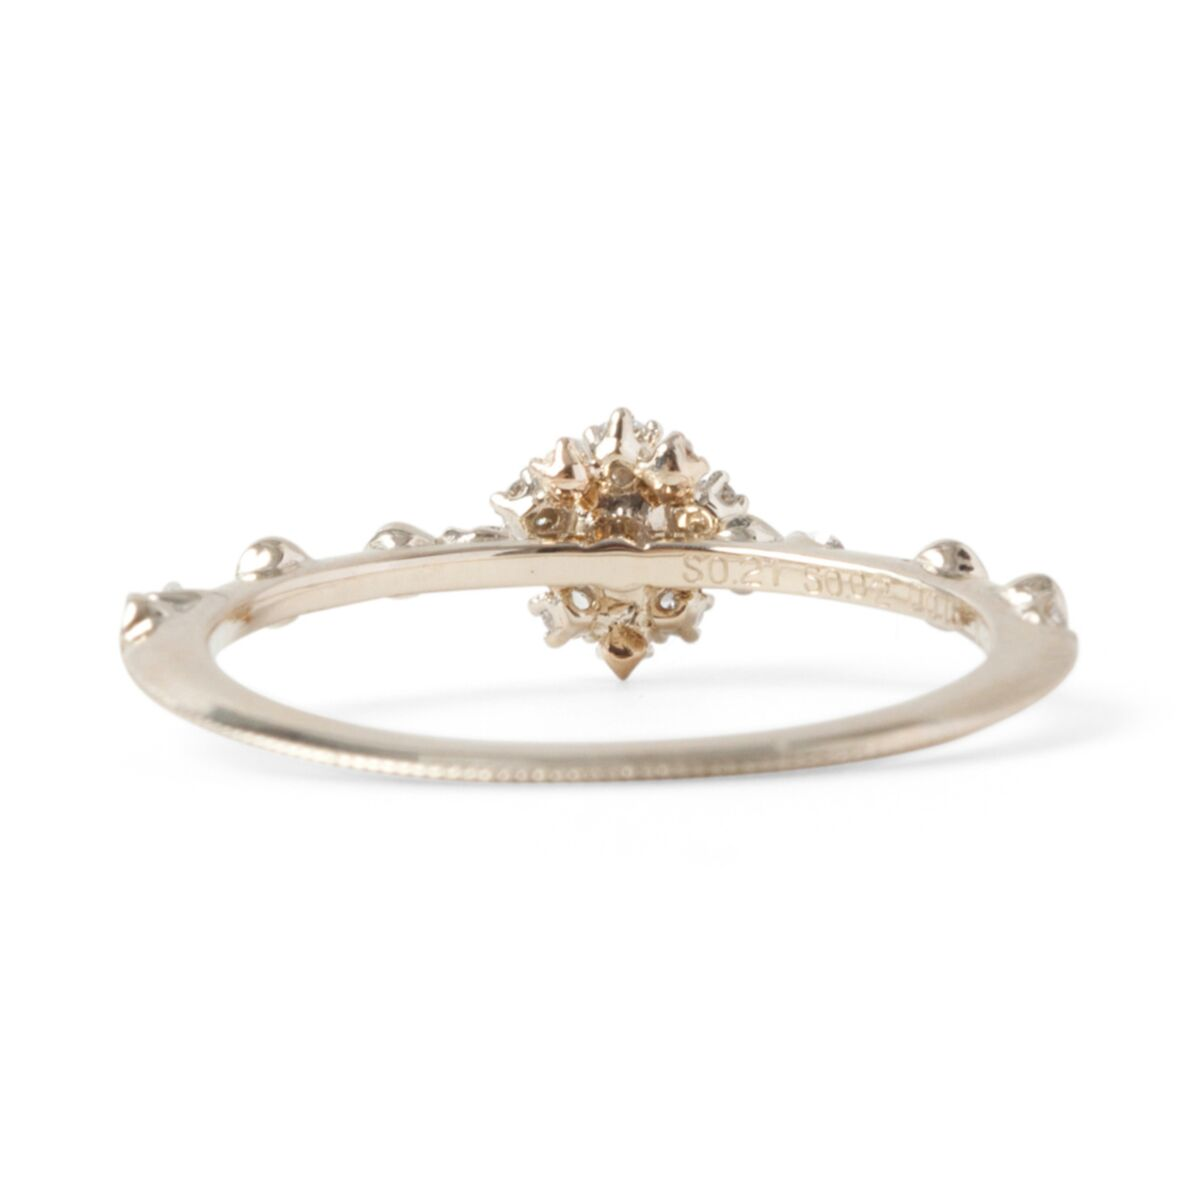 Wisteria Ring image